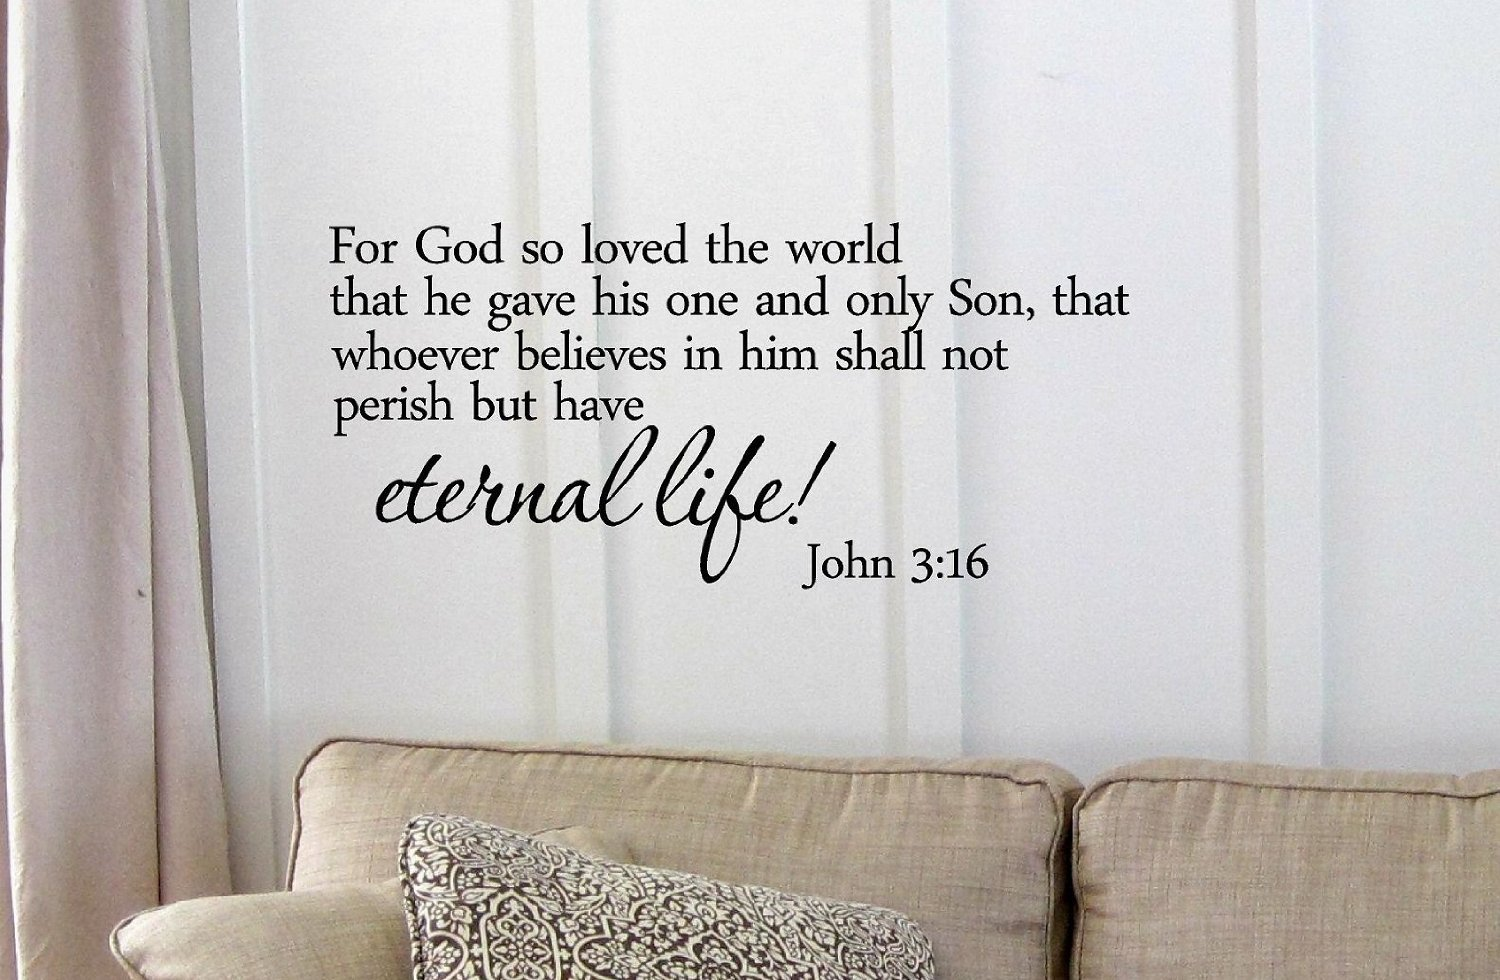 amazon com for god so loved the world that he gave his one and that he gave his one and only son that whoever believes in him shall not perish but have eternal life john 3 16 vinyl wall art inspirational quotes